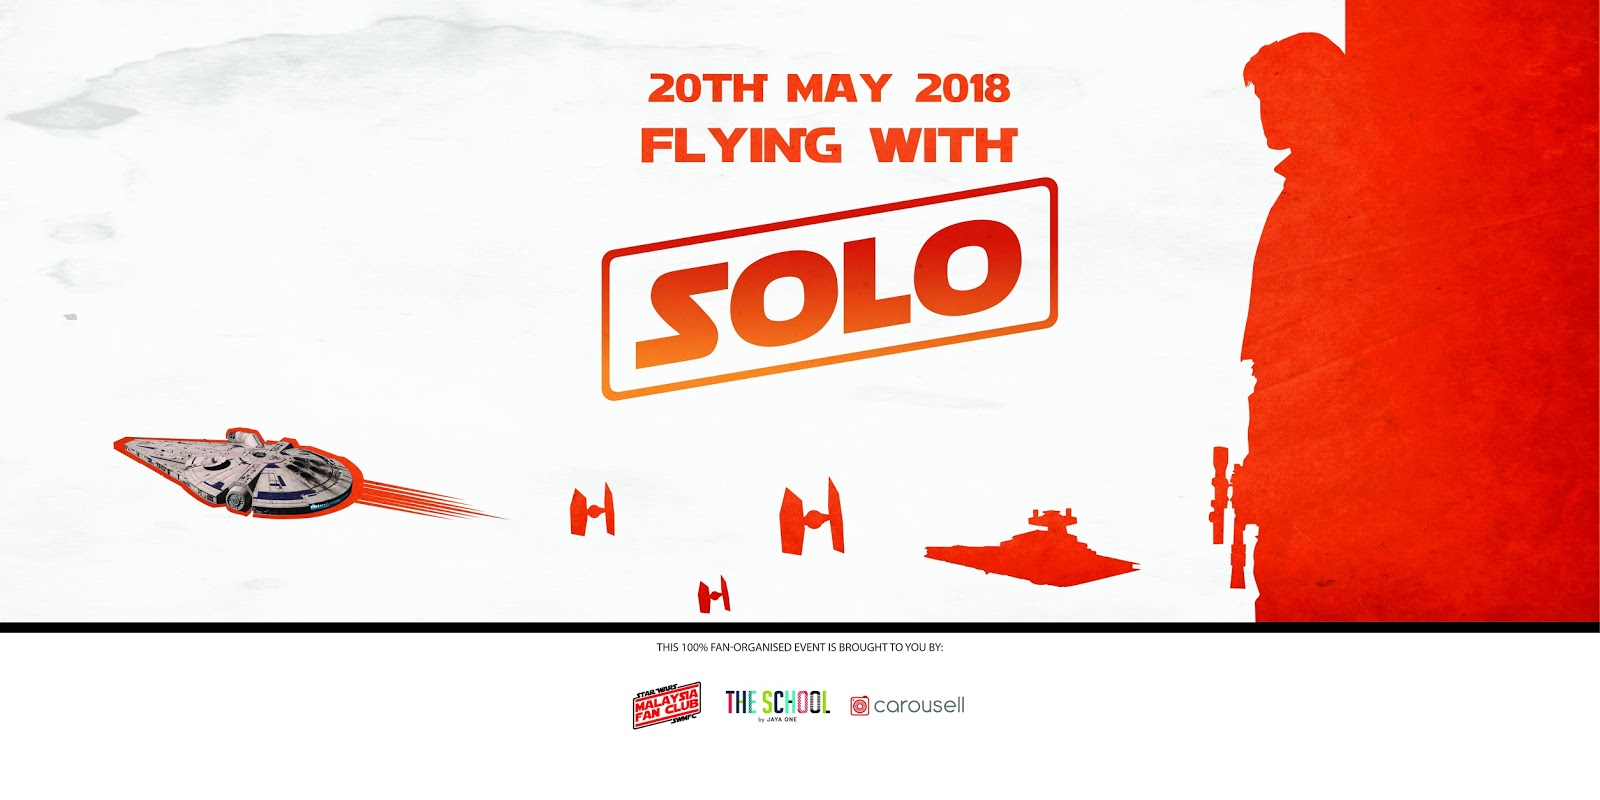 FLYING WITH SOLO Free Public Event in Conjunction with Launch of Solo: A Star Wars Story